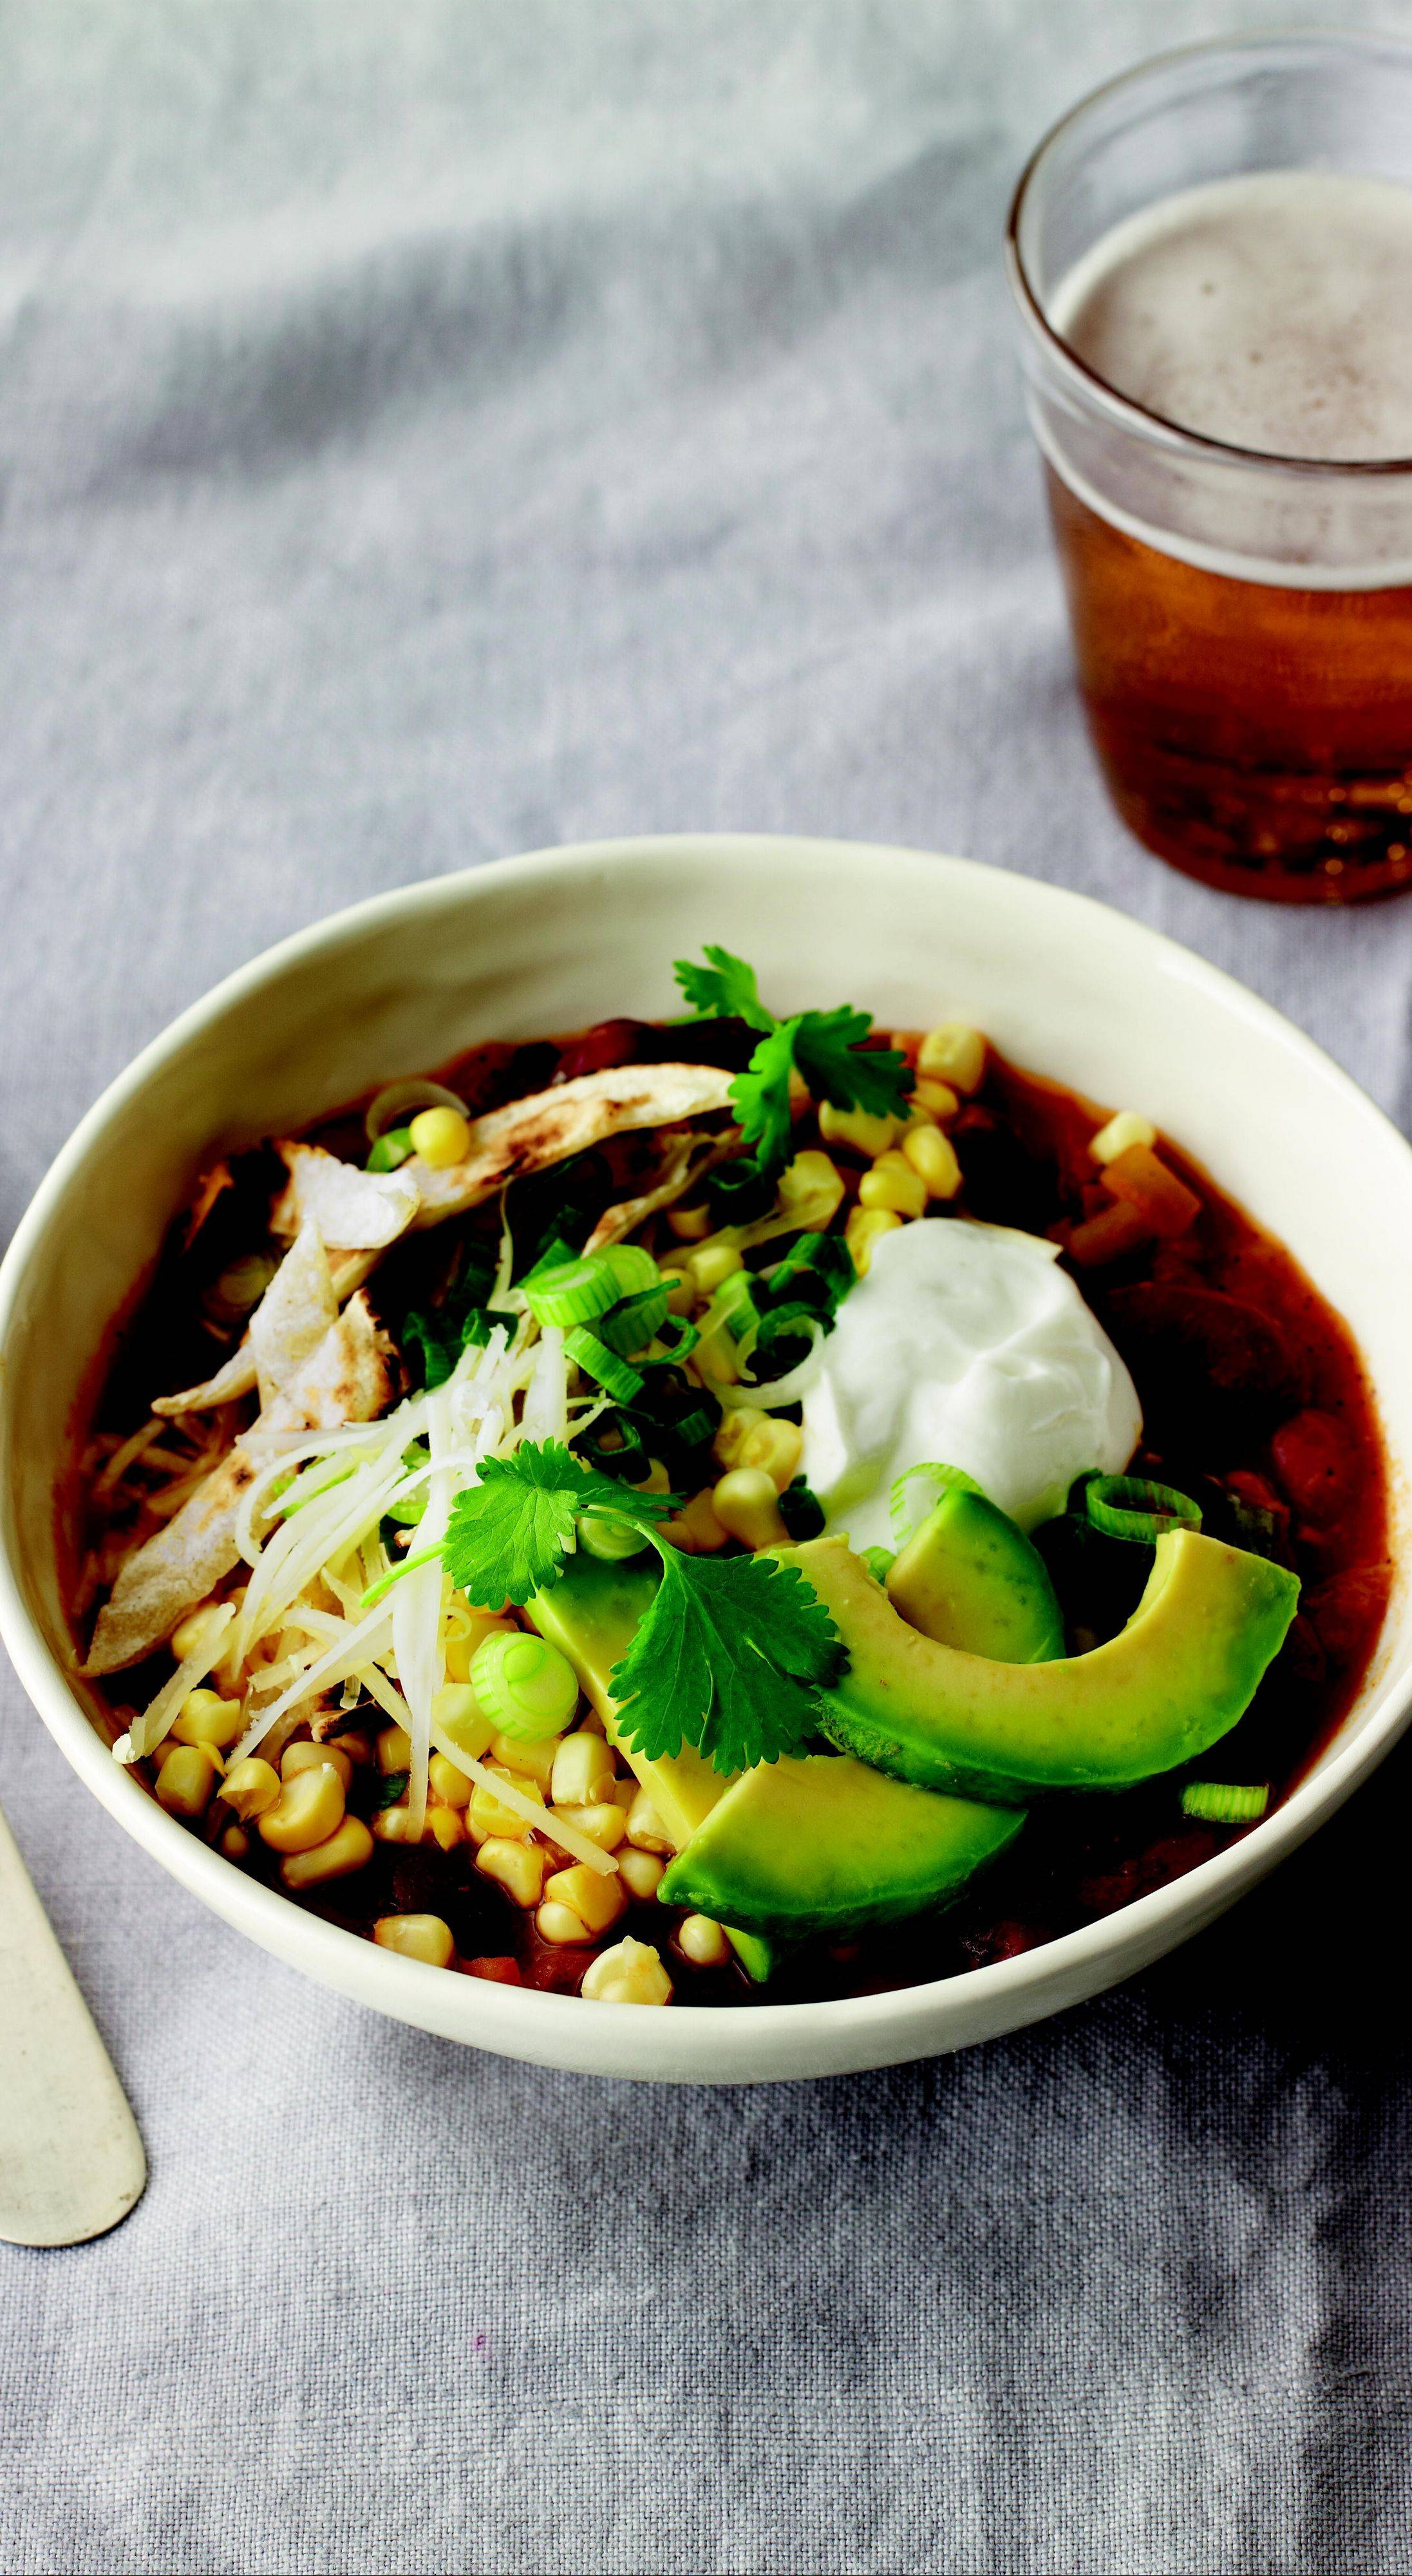 Use the recipe for Vegetarian Bean Chili, from �Meatless,� the latest cookbook from Martha Stewart, as a base and switch up the beans, veggies and peppers to match your tastes.